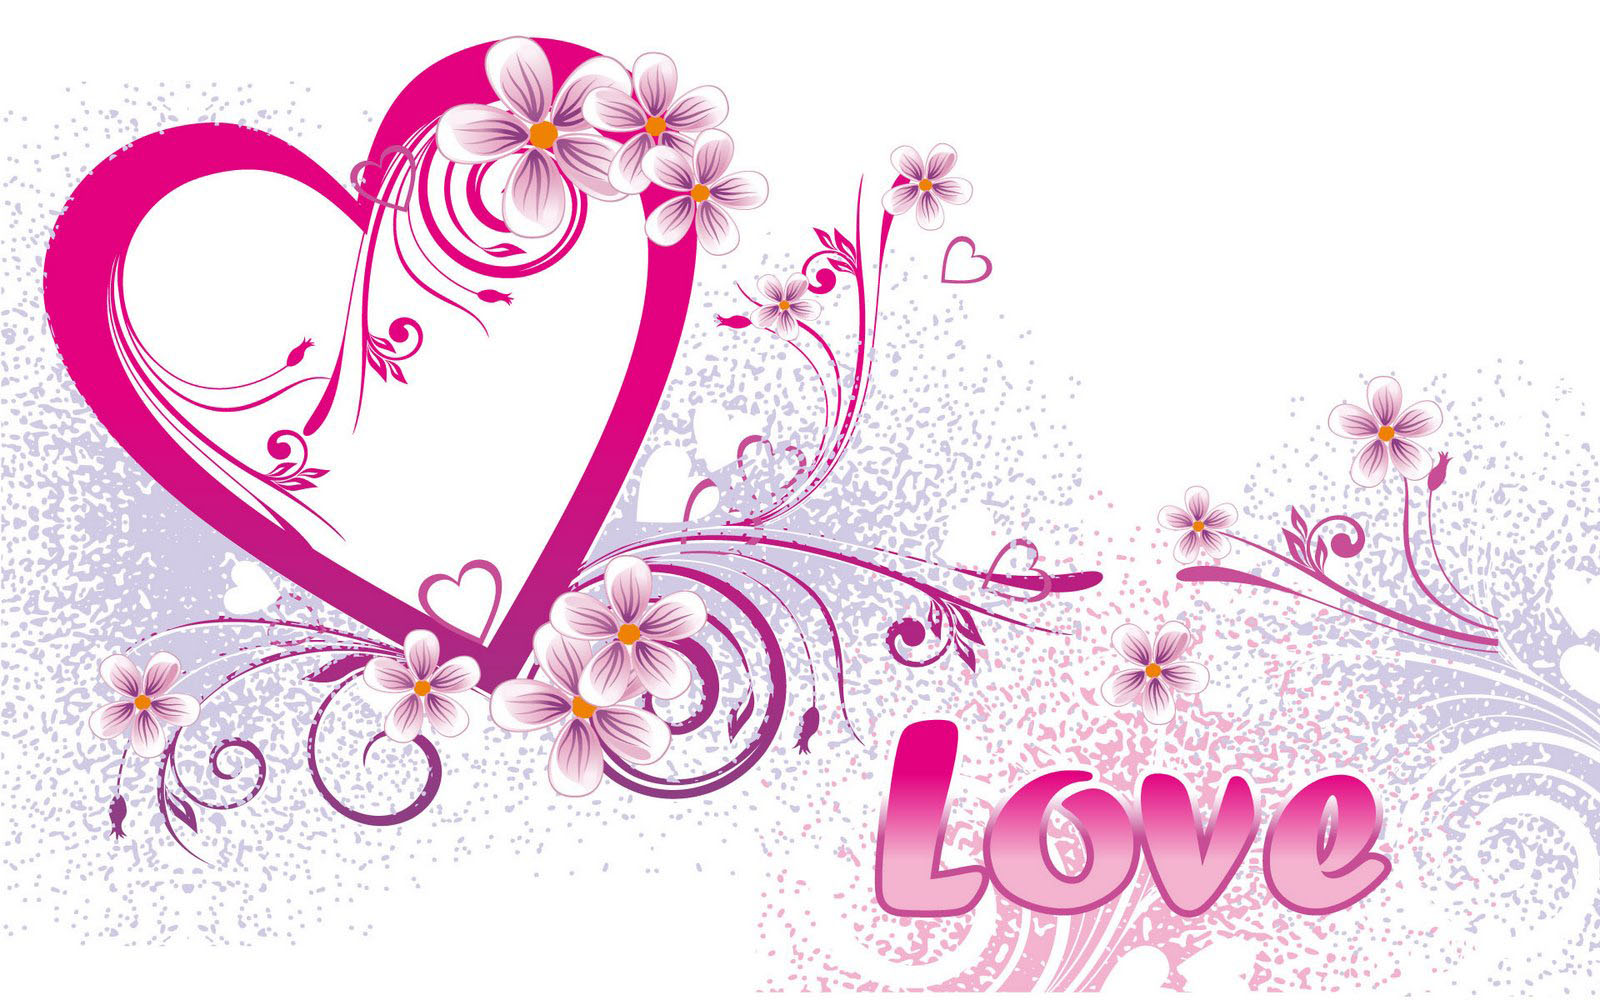 Wallpaper Images Of Love : wallpapers: New Love Wallpapers